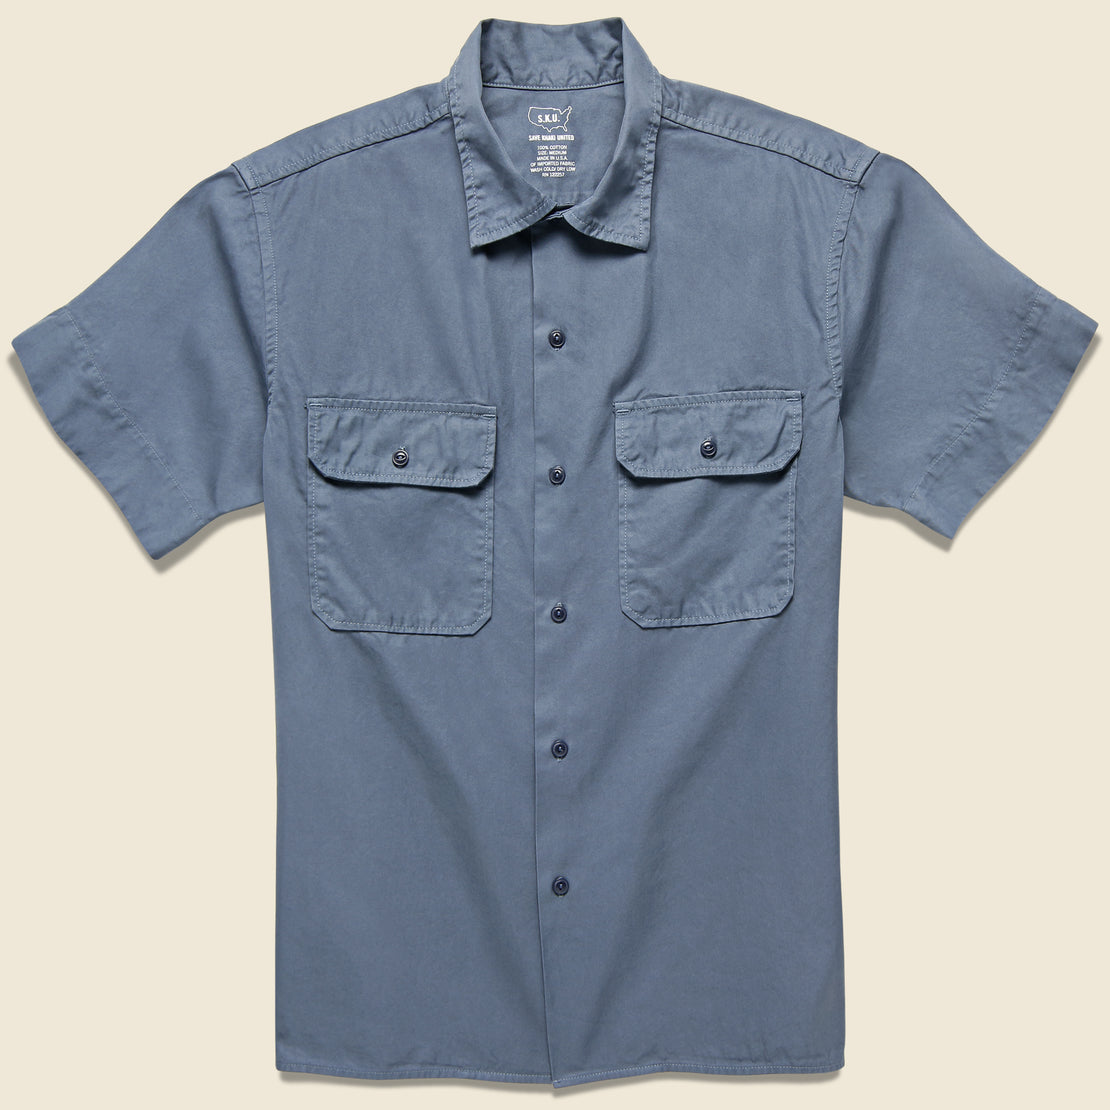 Save Khaki Light Twill Camp Shirt - Blue